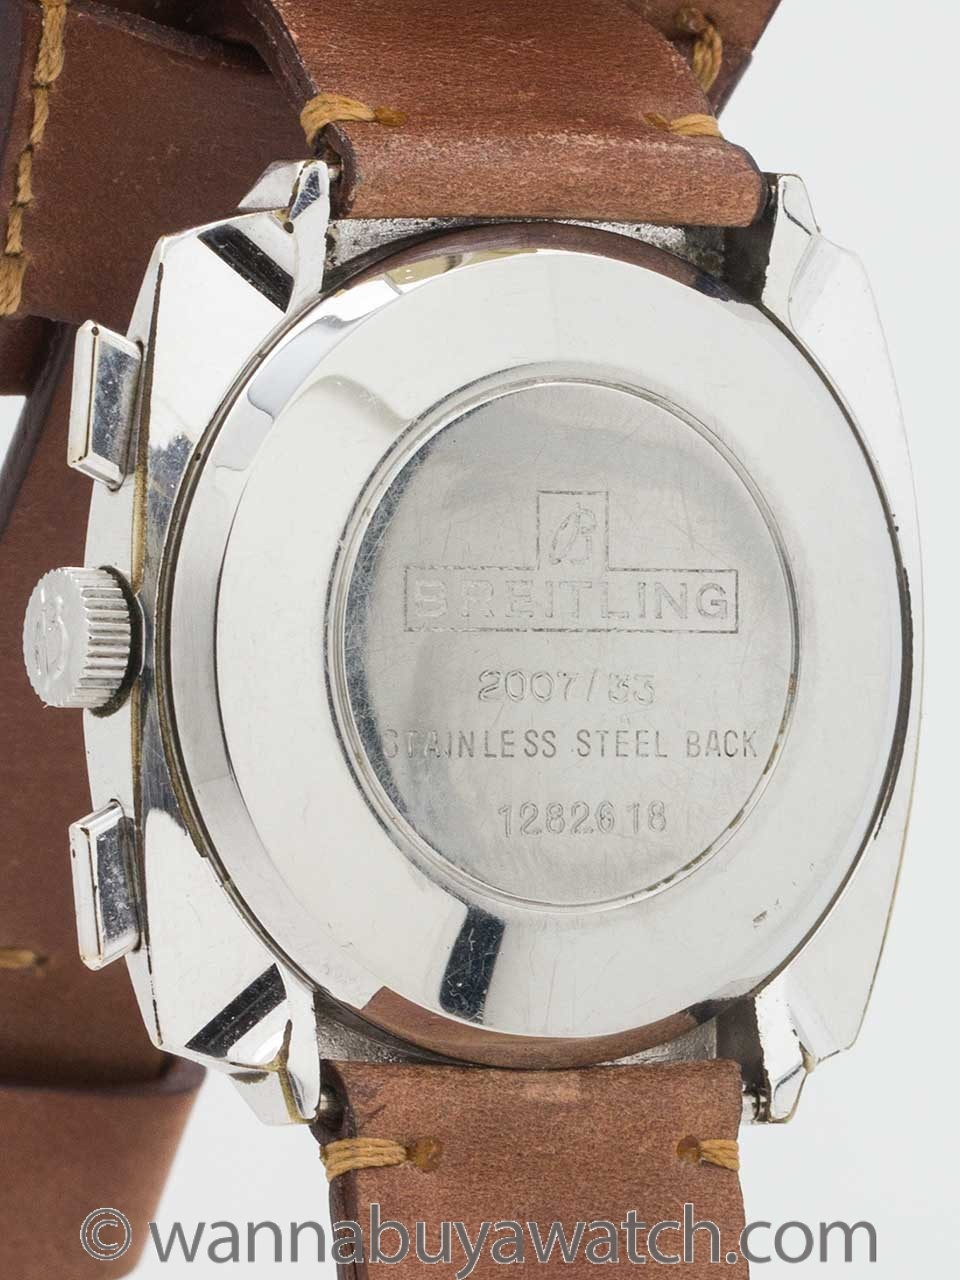 Breitling Top Time Chronograph Stainless Steel circa 1960's